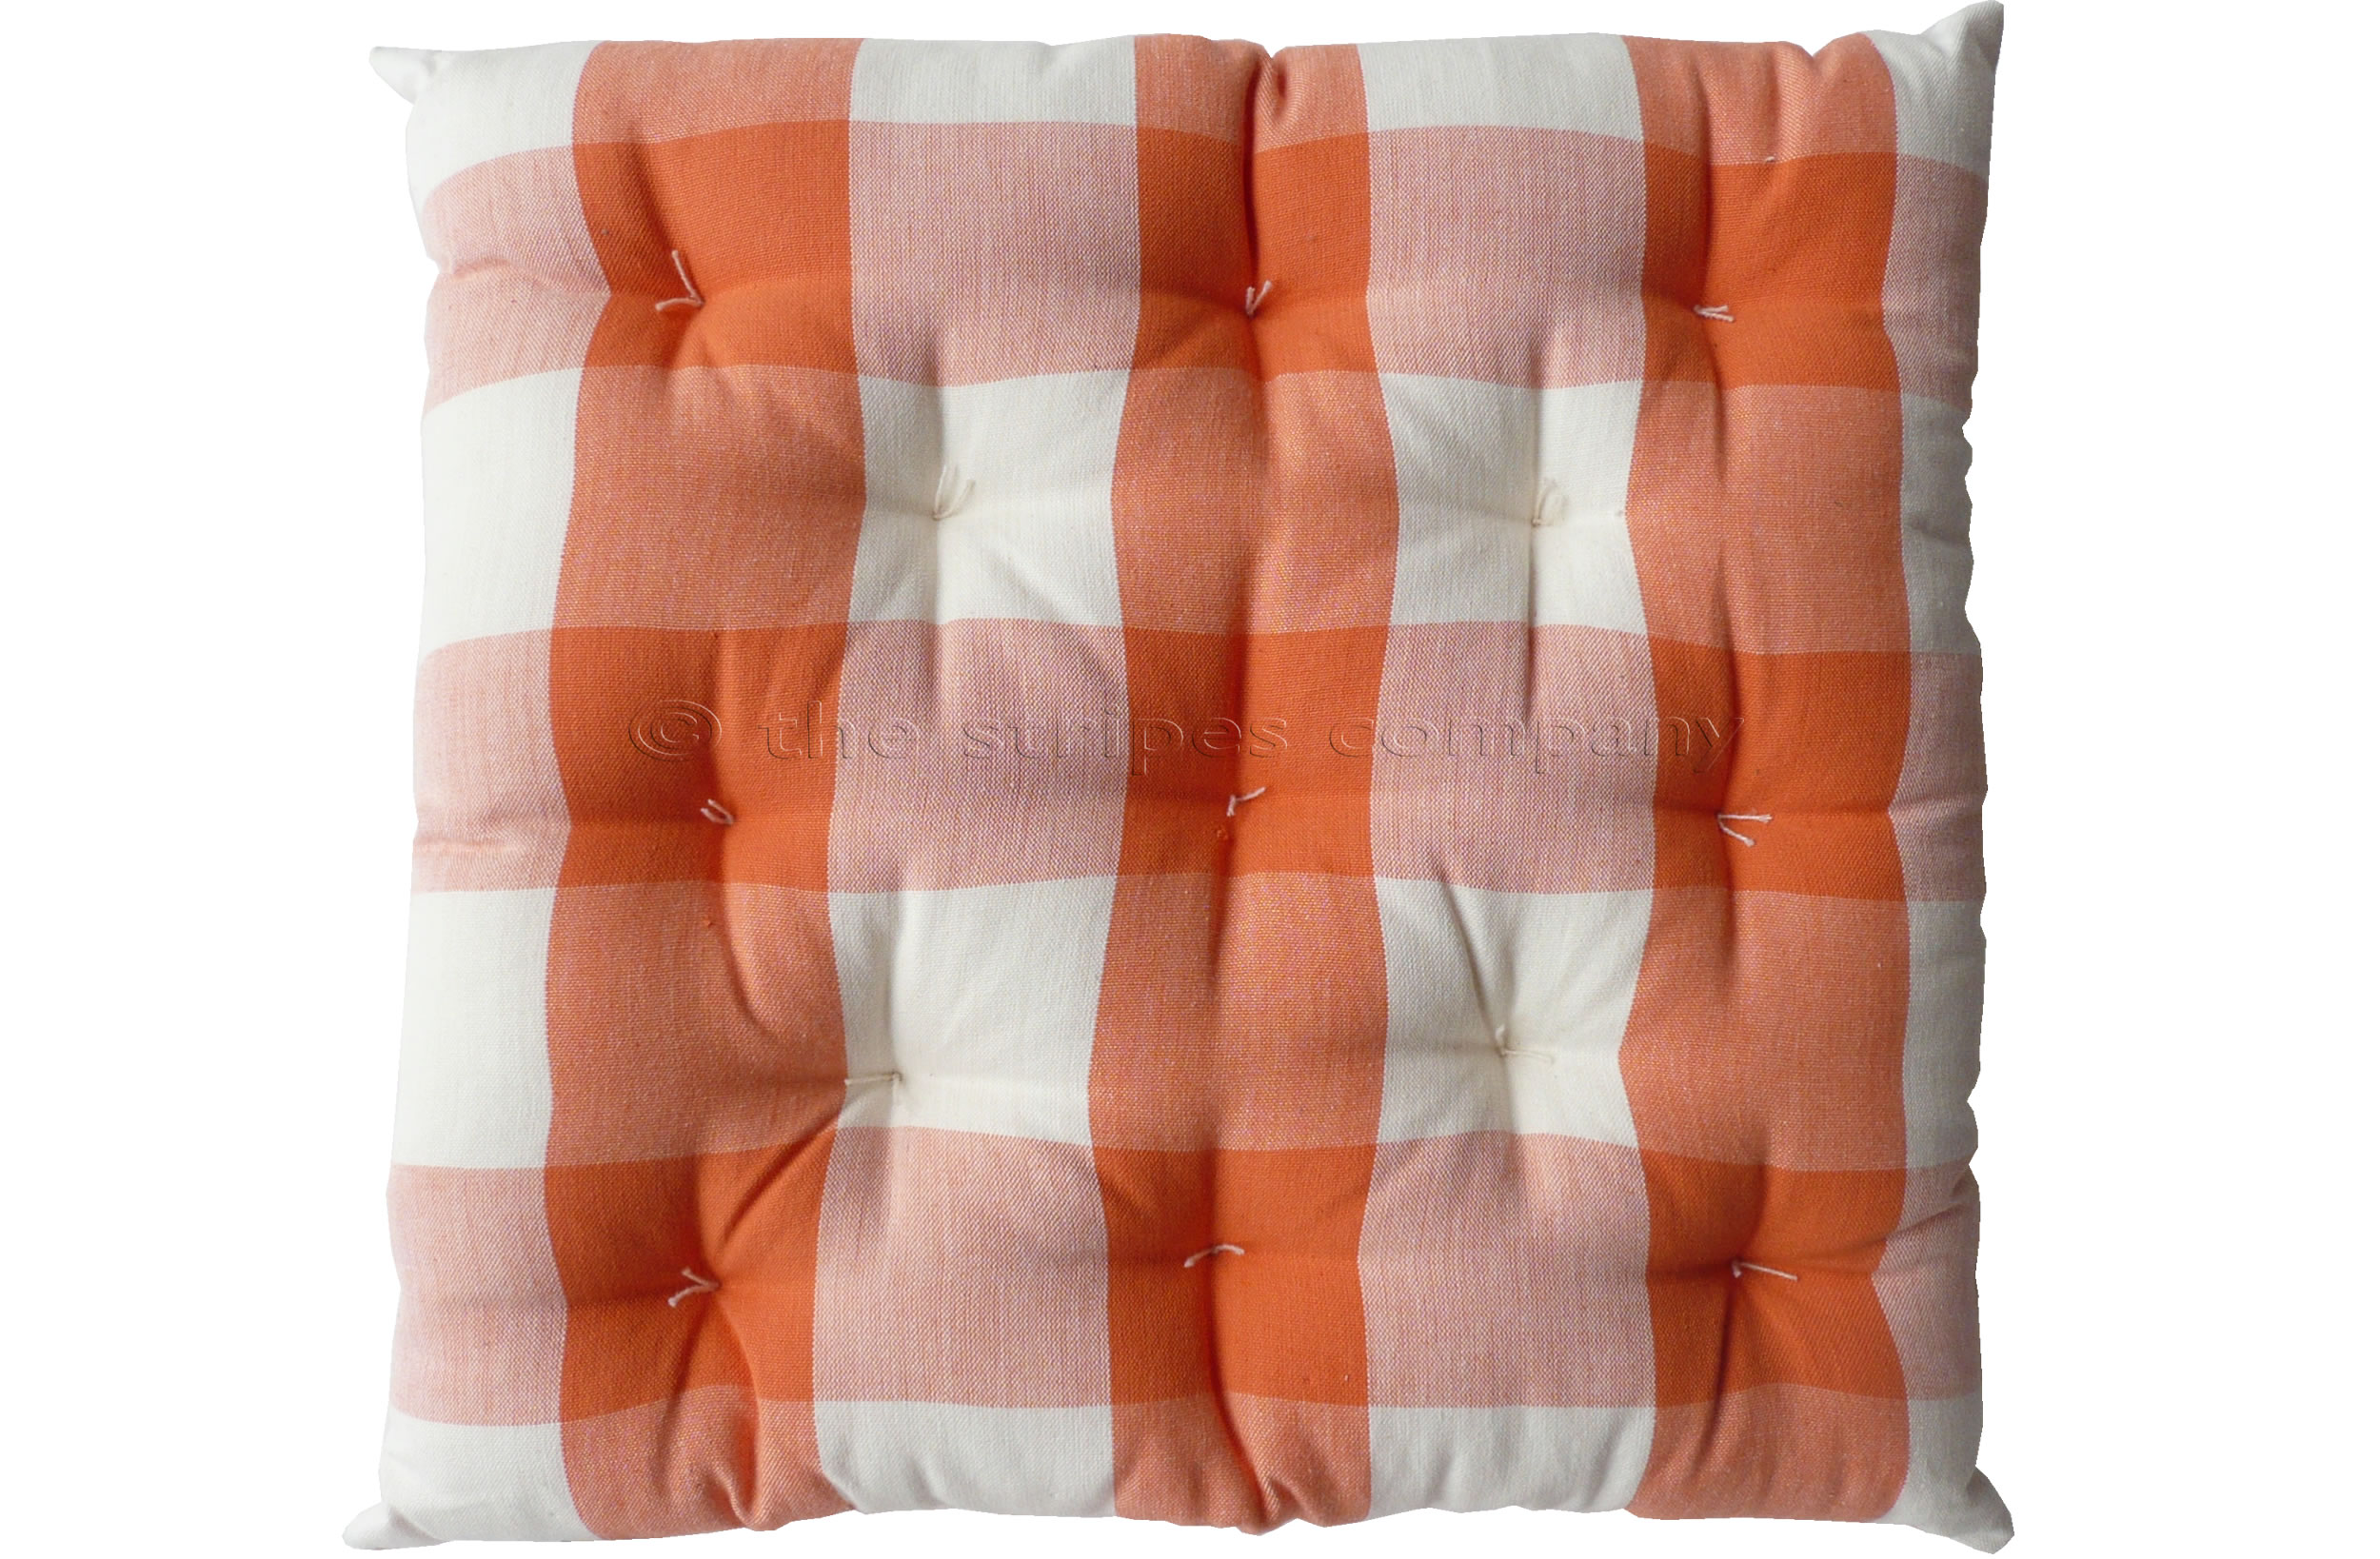 Gingham Seat Pads | Tangerine Large Check Chair Cushions | Vichy Check Seat Pads